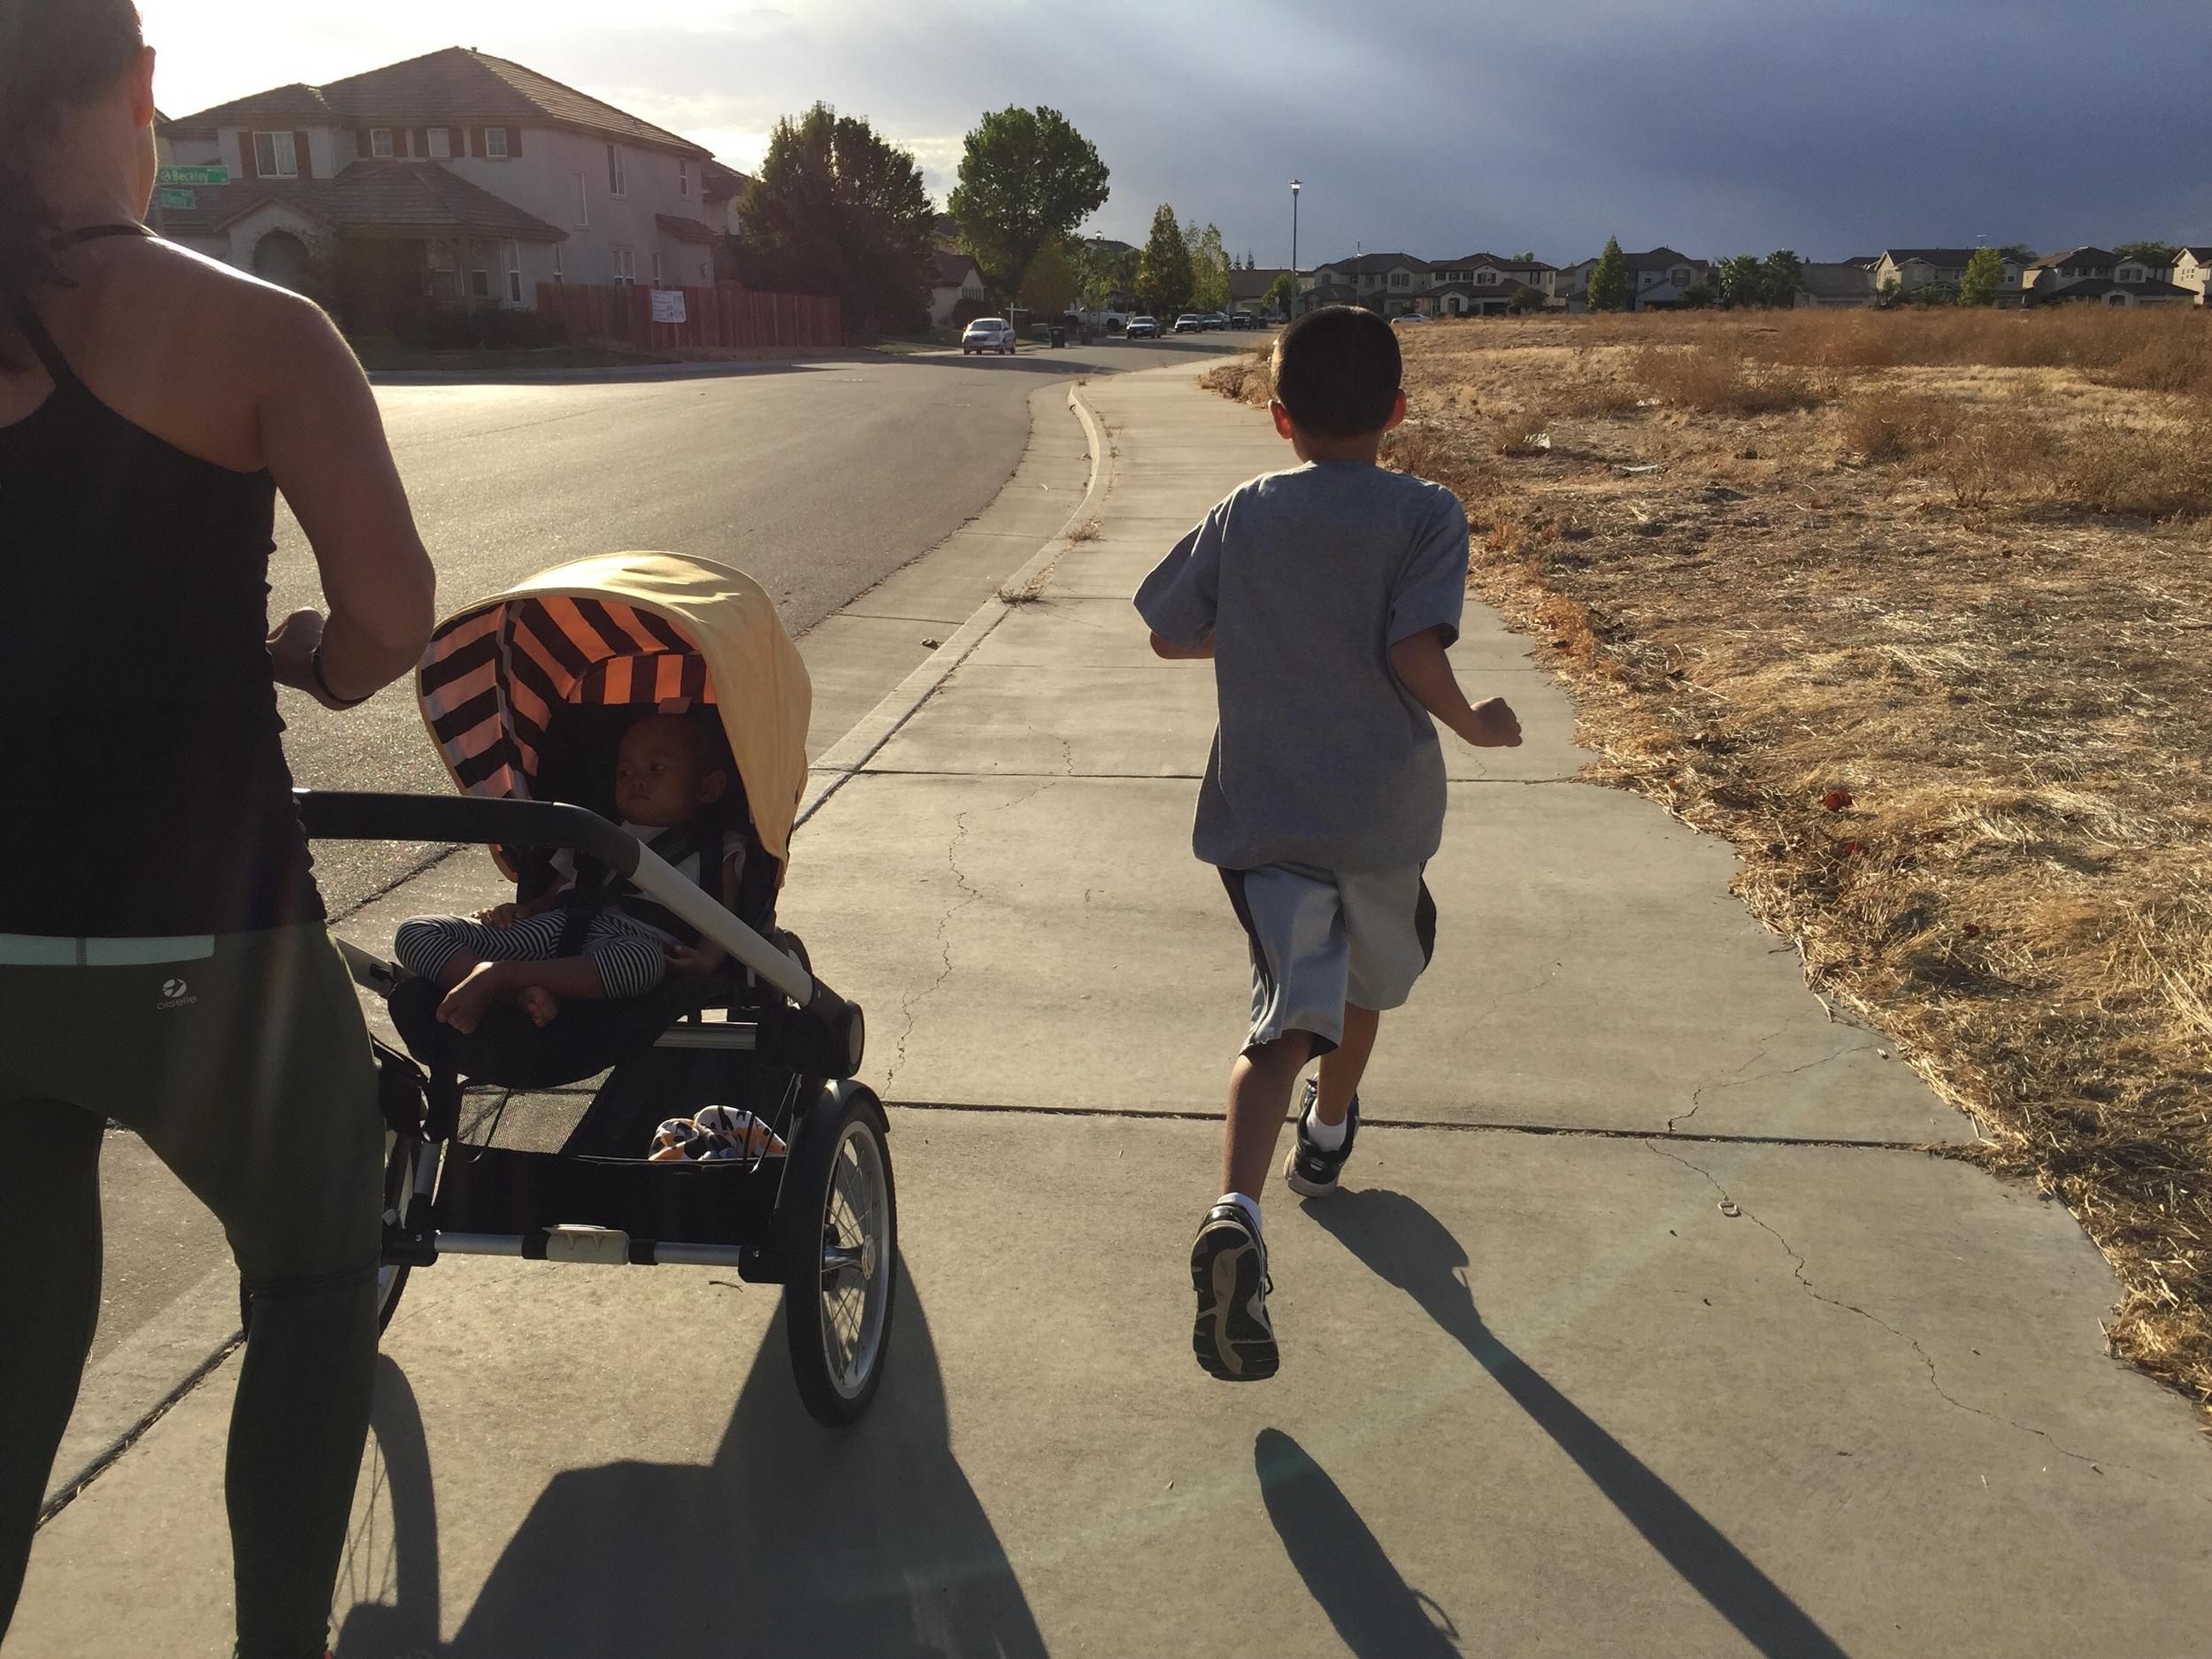 Racing the 9 year old to the stop sign which ended up being 200m. He won, I had the stroller to push. Extra work!